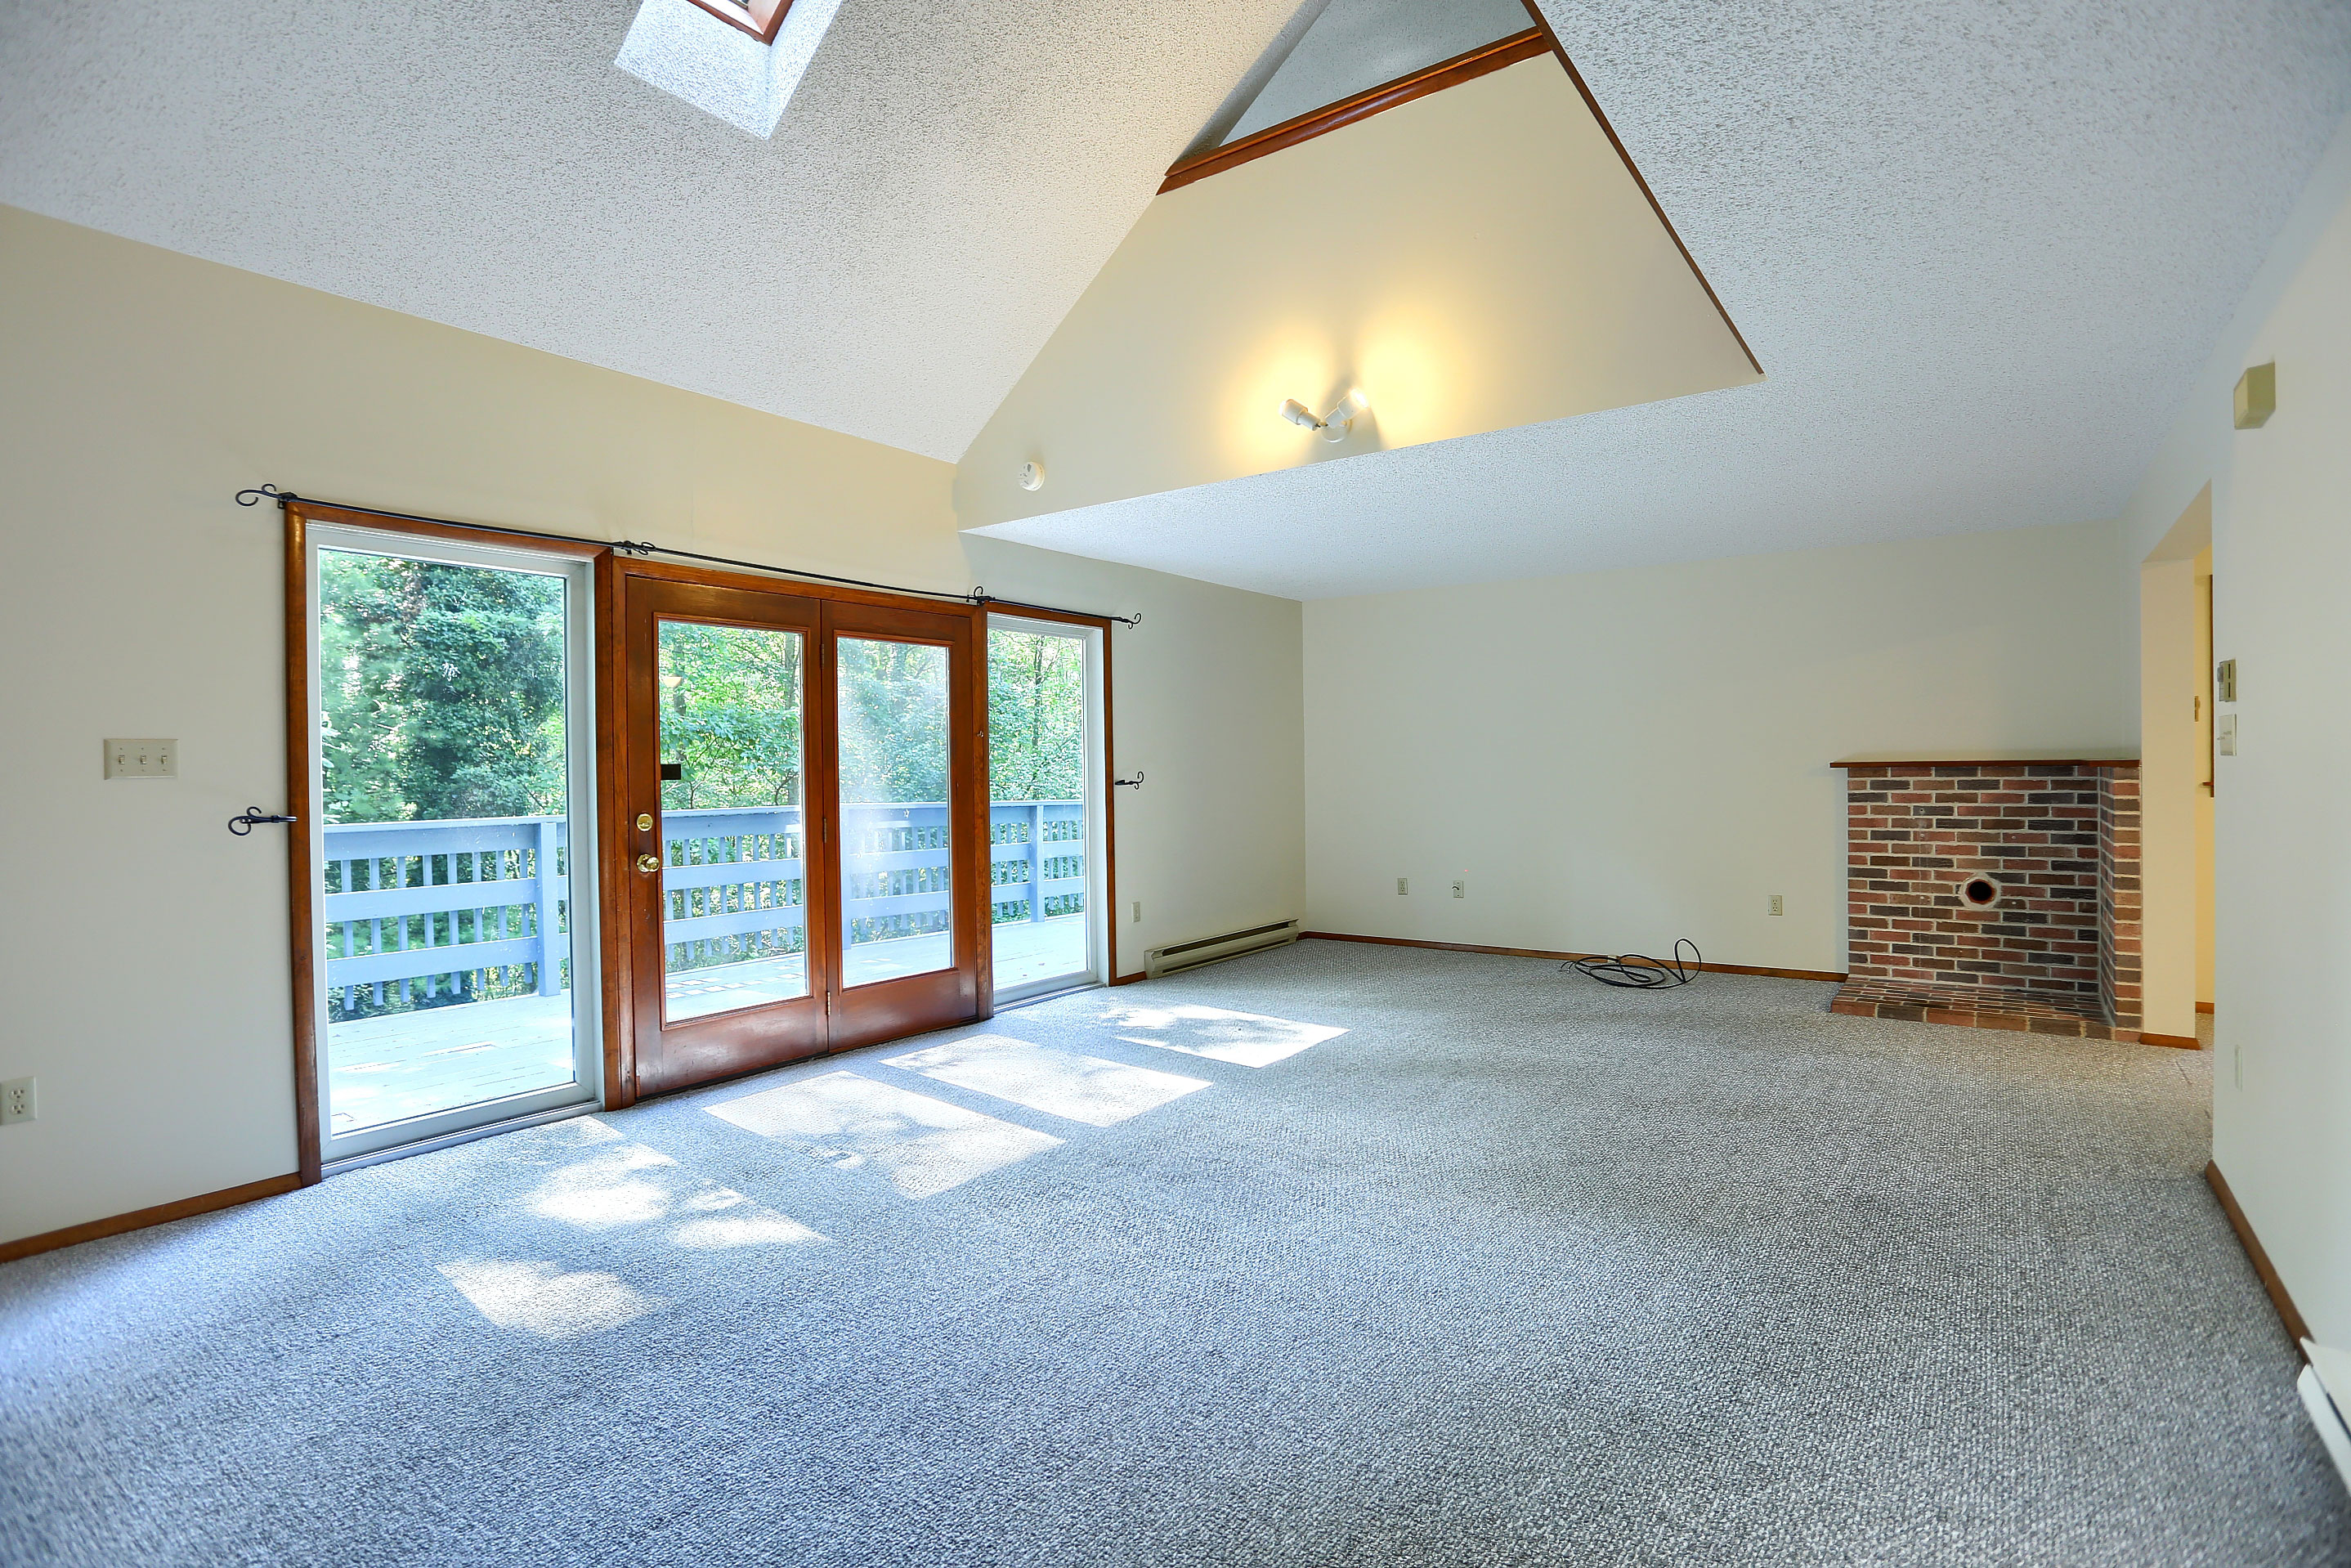 House In Bellefonte, PA | 1679 Barns Lane | Property Management, Inc.